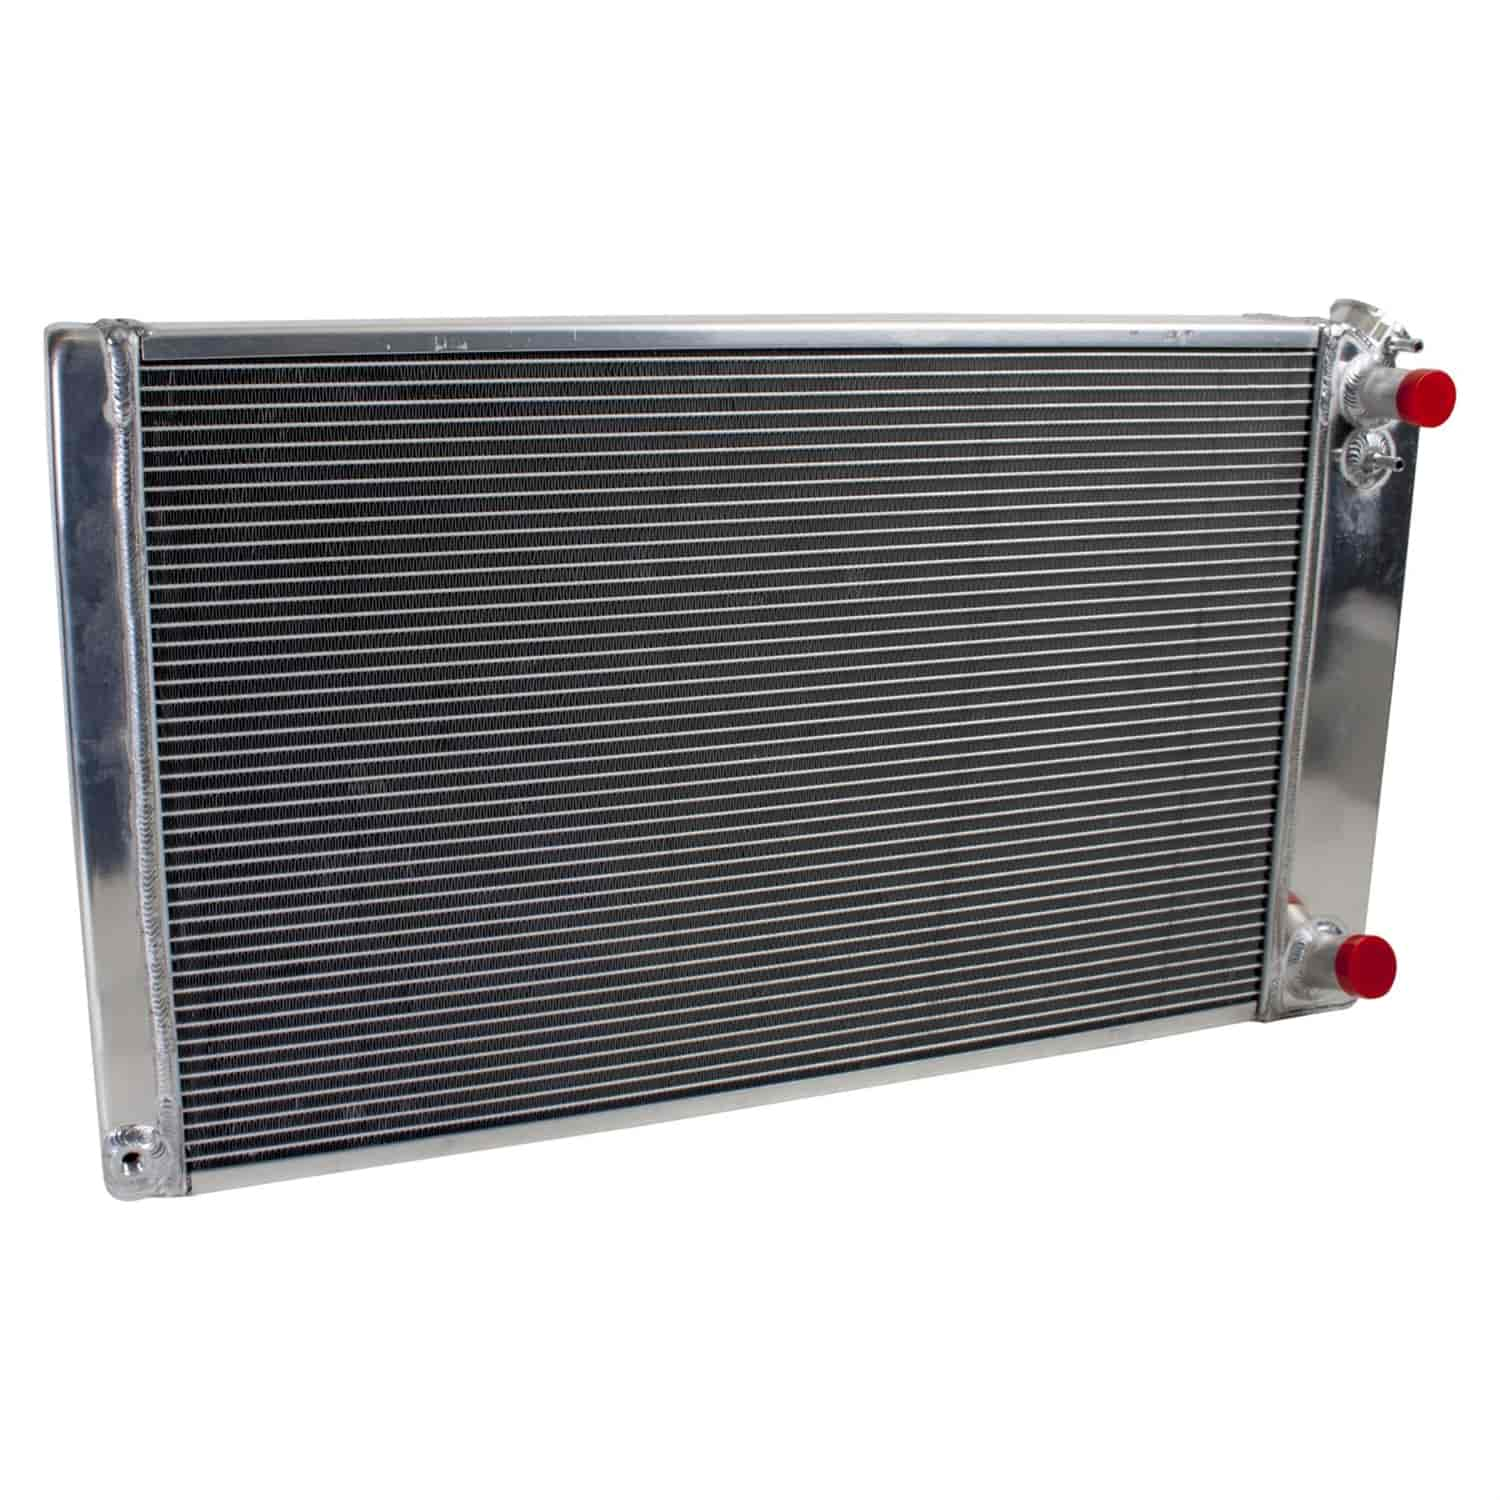 Griffin Radiators 8-00013-LS